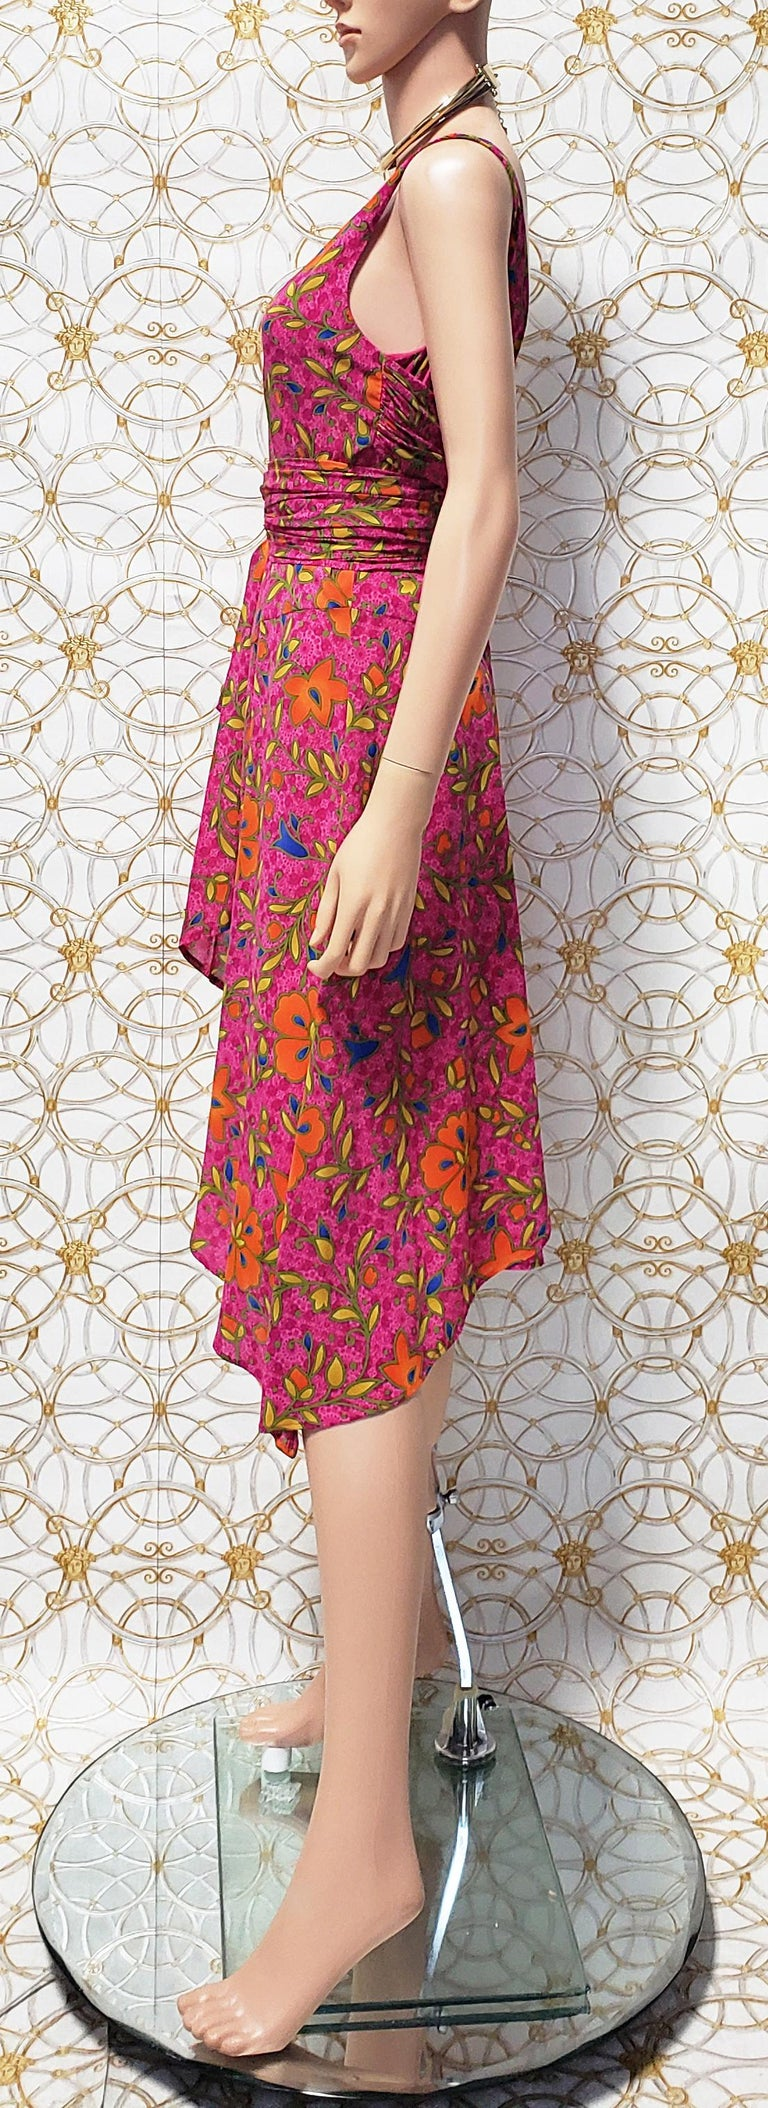 Pink NEW VERSACE PINK FLORAL PRINT SILK Dress 44 - 10 For Sale